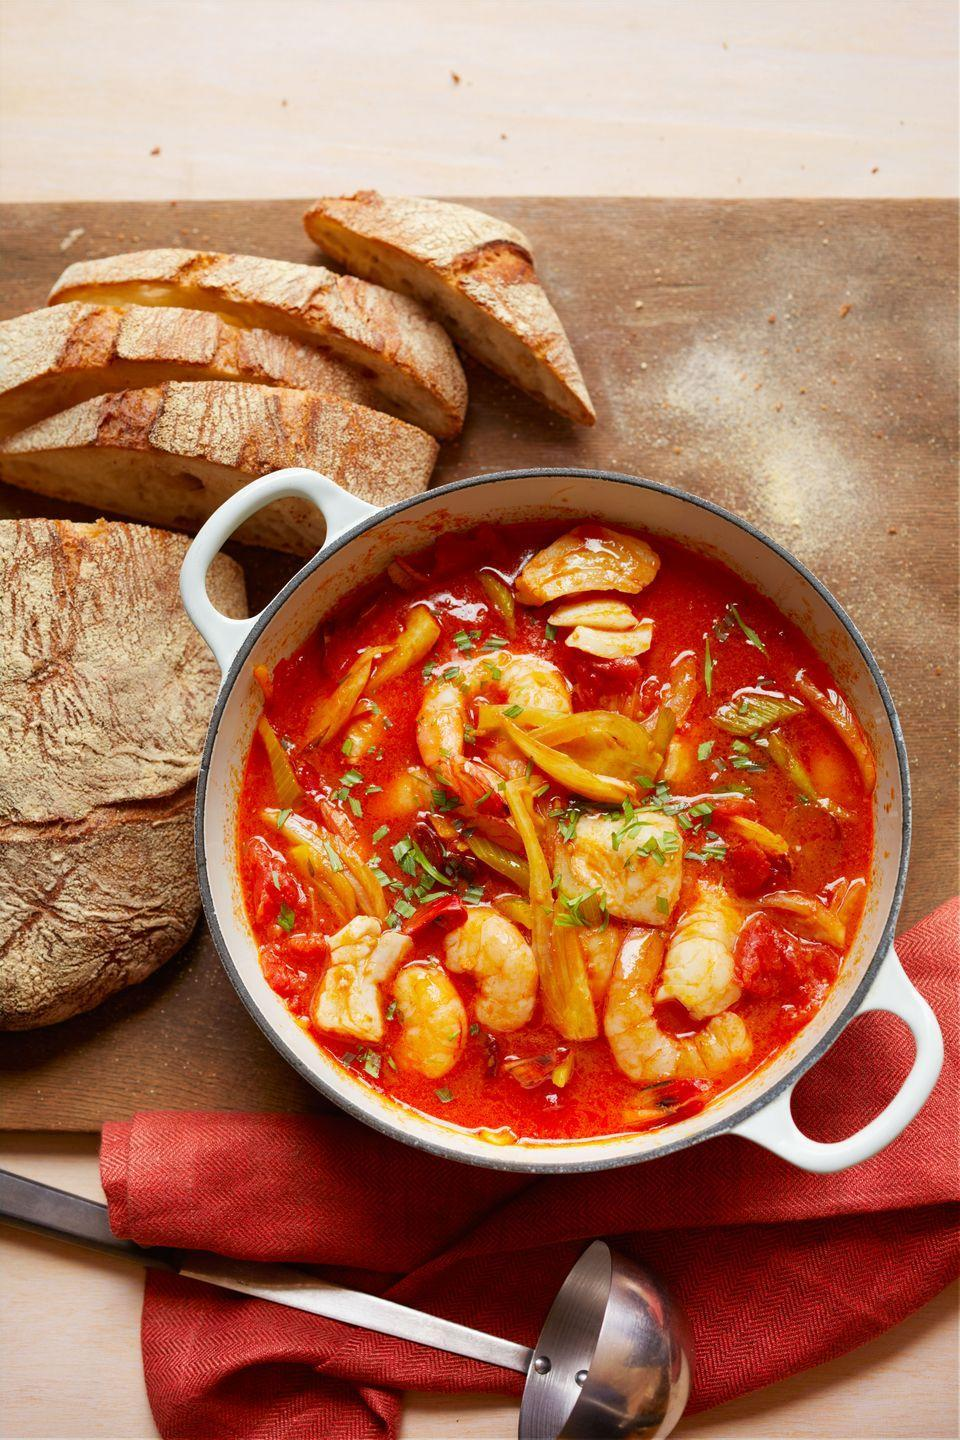 """<p>Spicy chorizo sausage gives extra oomph to this seafood and tomato-packed stew.</p><p><em><a href=""""https://www.womansday.com/food-recipes/food-drinks/recipes/a11362/seafood-chorizo-vegetable-stew-recipe-wdy1013/"""" rel=""""nofollow noopener"""" target=""""_blank"""" data-ylk=""""slk:Get the recipe from Woman's Day »"""" class=""""link rapid-noclick-resp"""">Get the recipe from Woman's Day »</a></em></p>"""